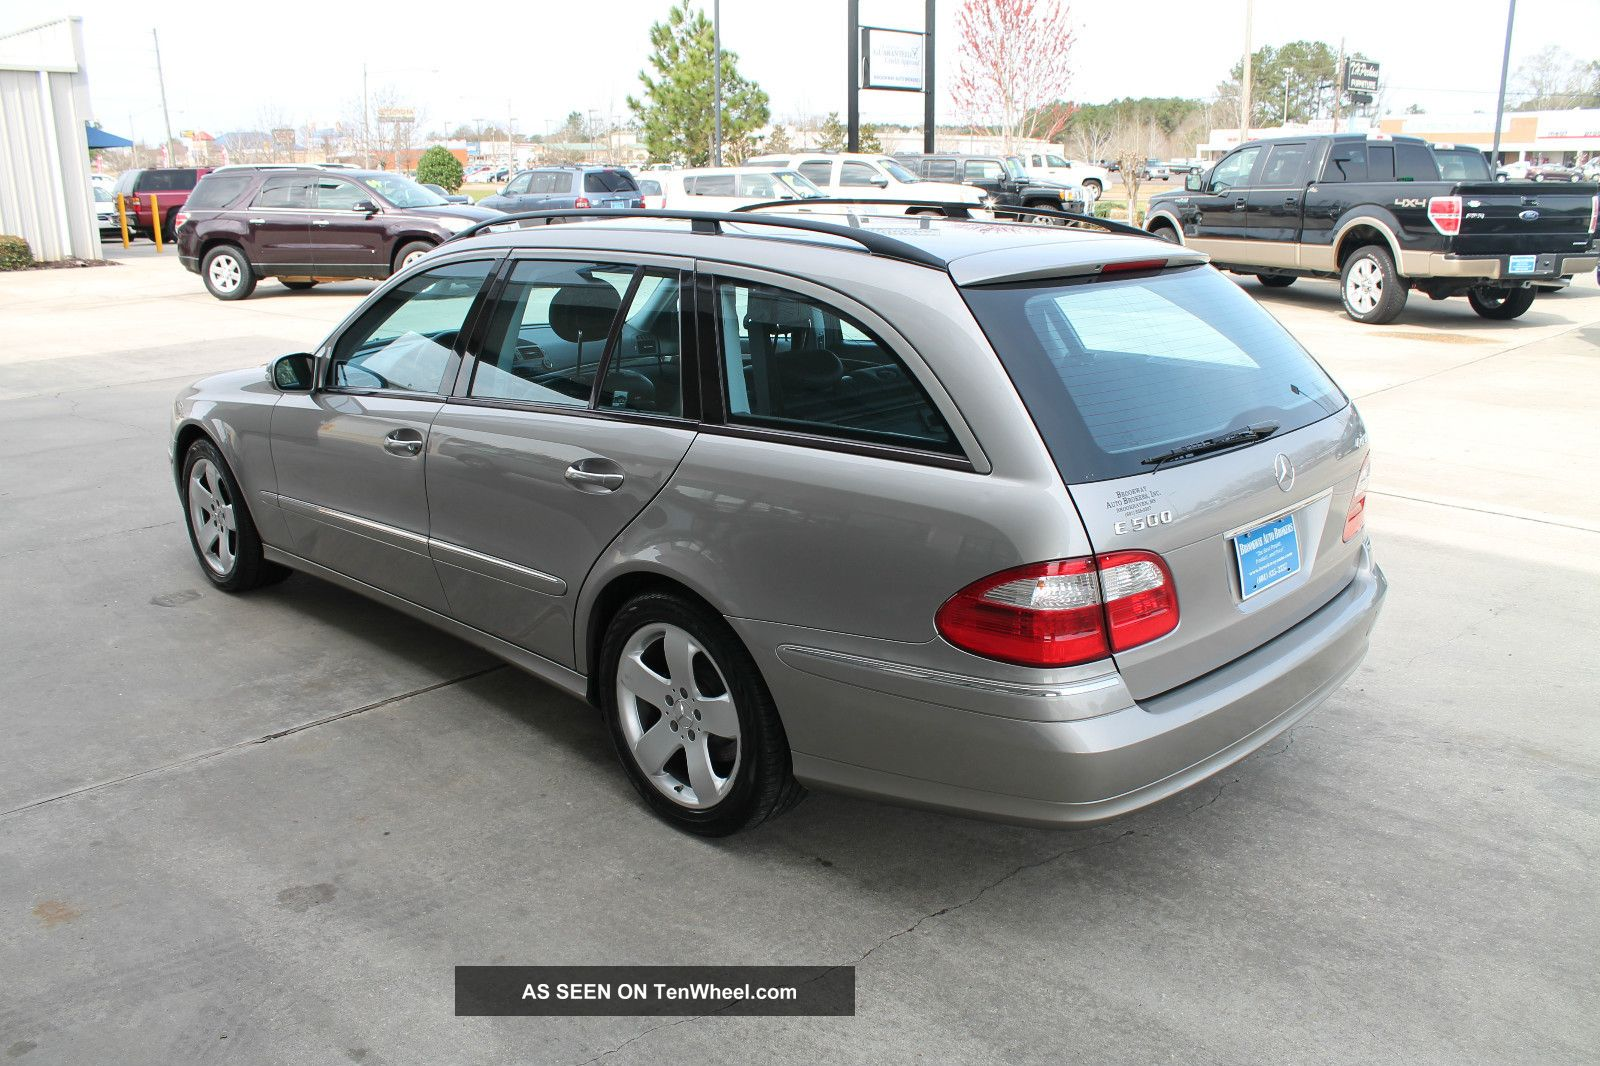 2004 mercedes e320 wagon review pictures to pin on for 2004 mercedes benz e320 review